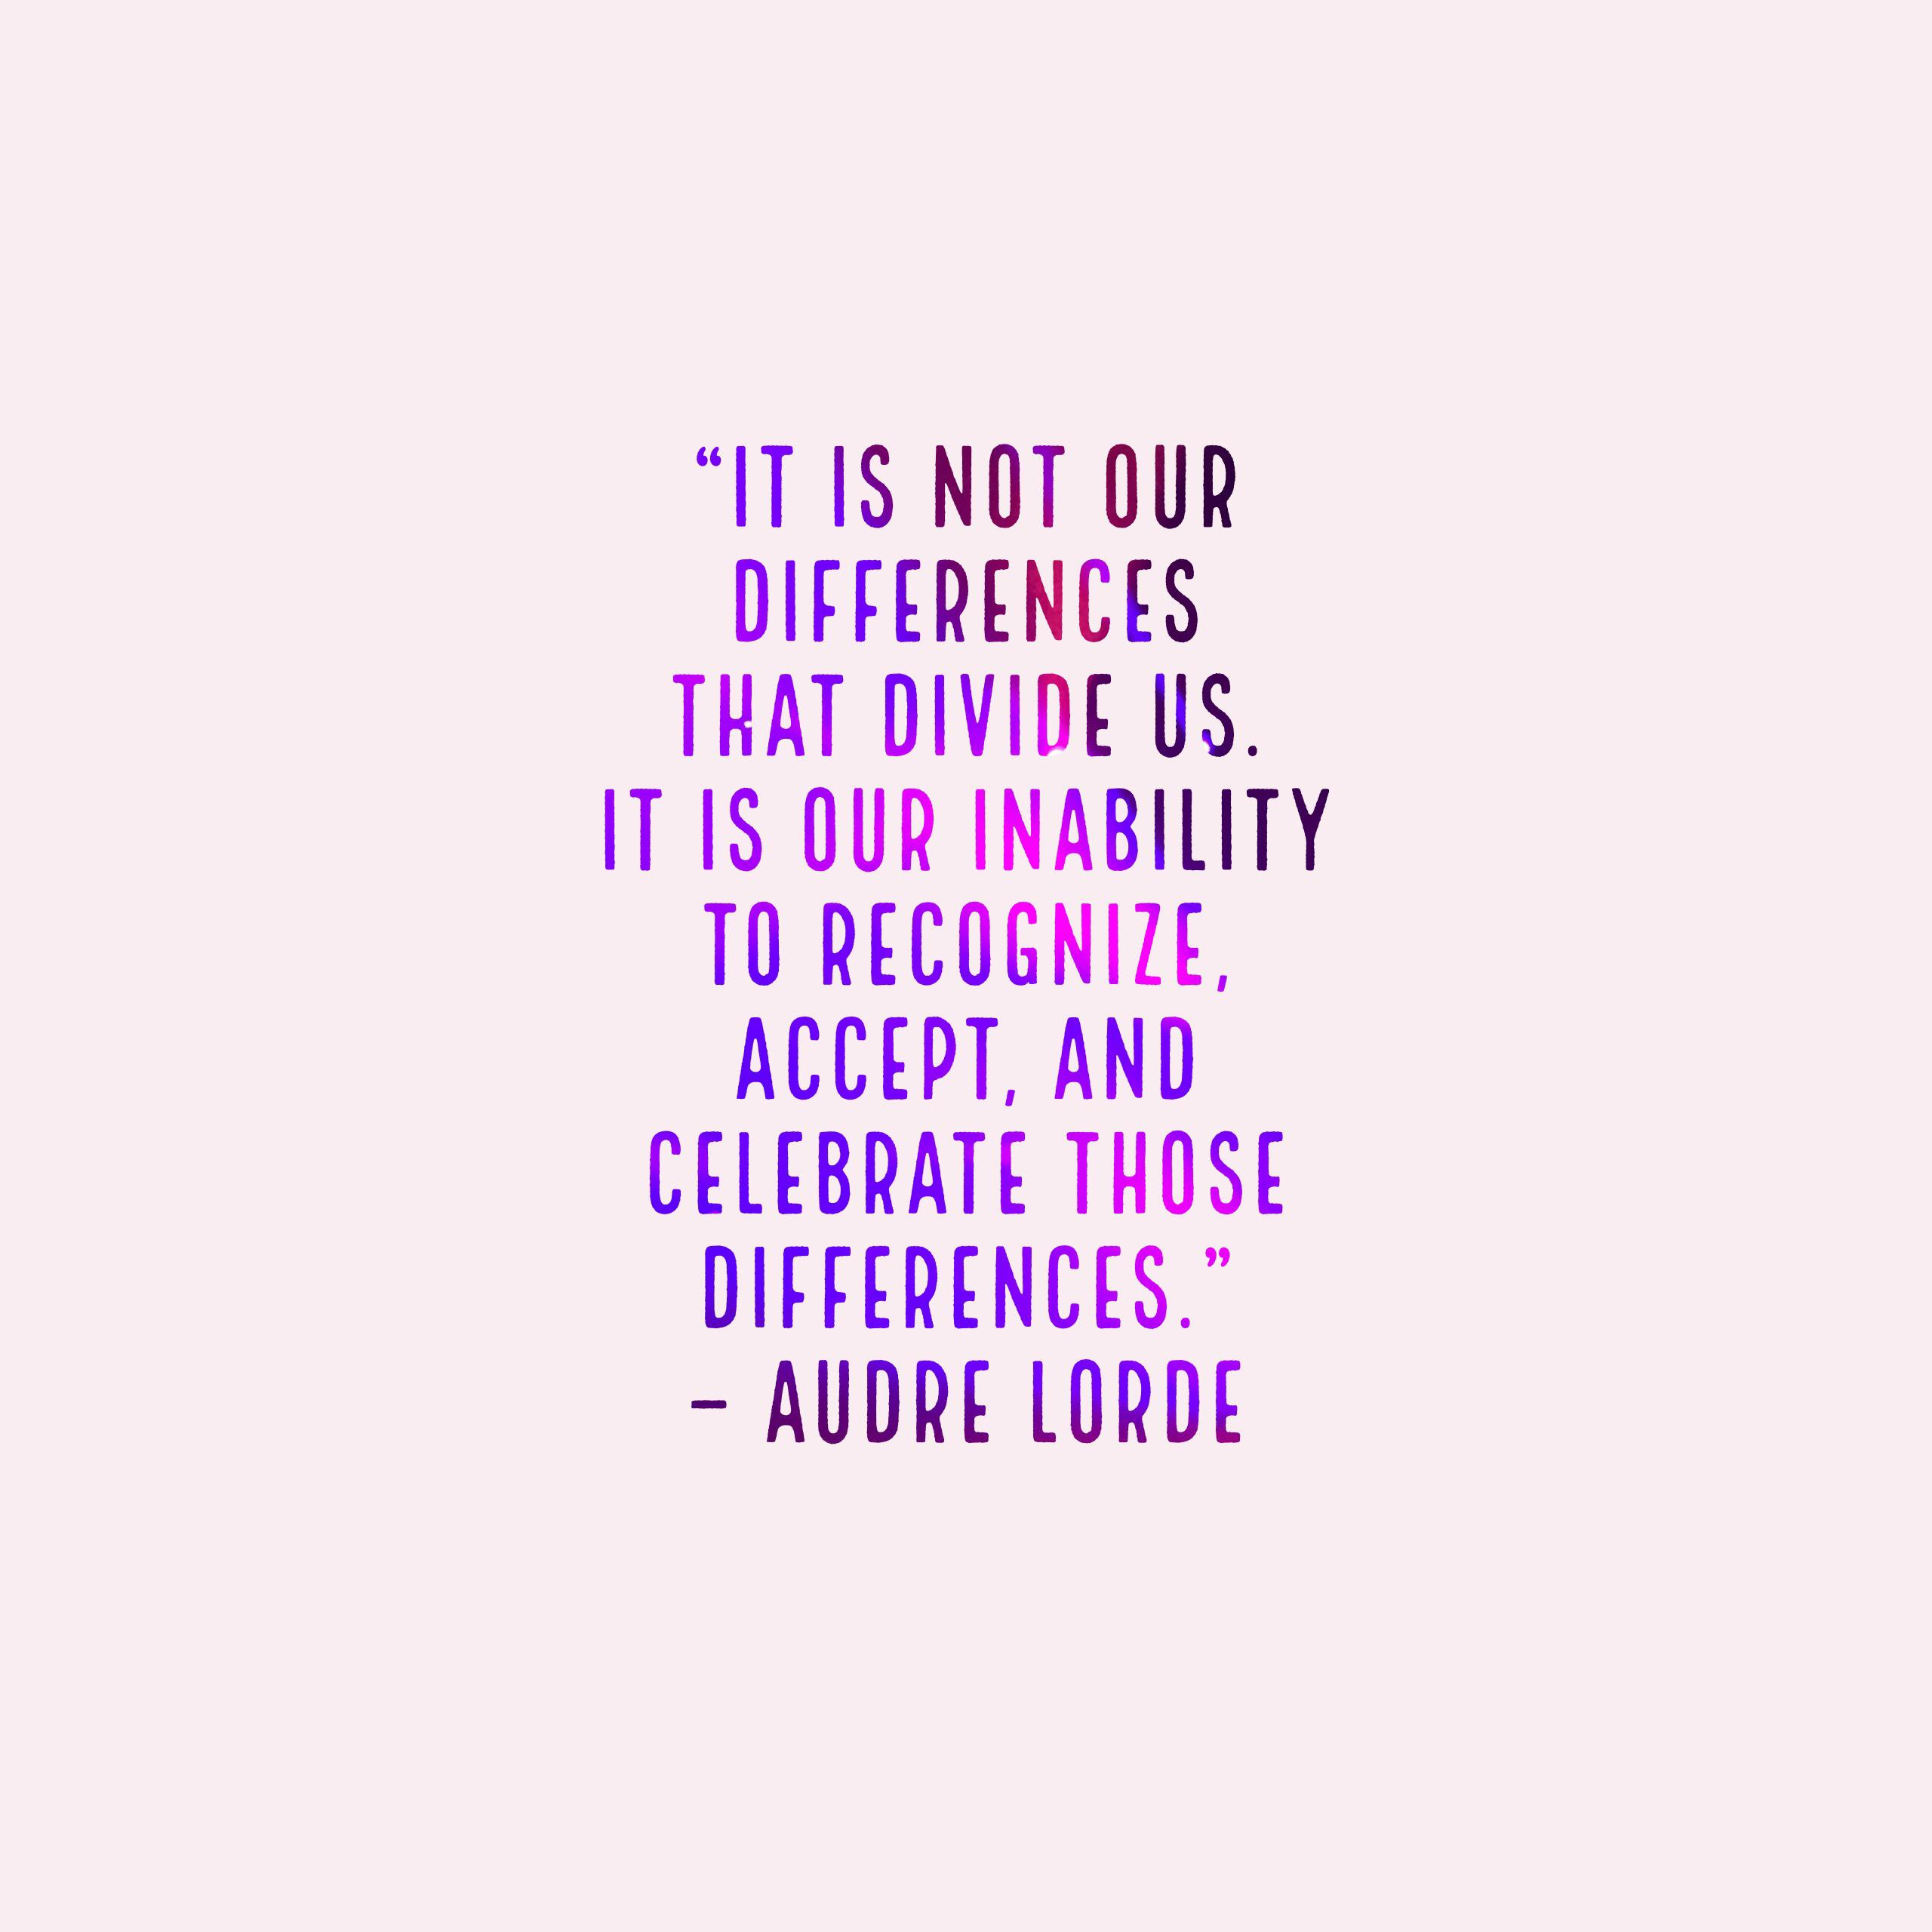 """It is not our differences that divide us. It is our inability to recognize, accept, and celebrate those differences."" – Audre Lorde [2560 × 2560]"